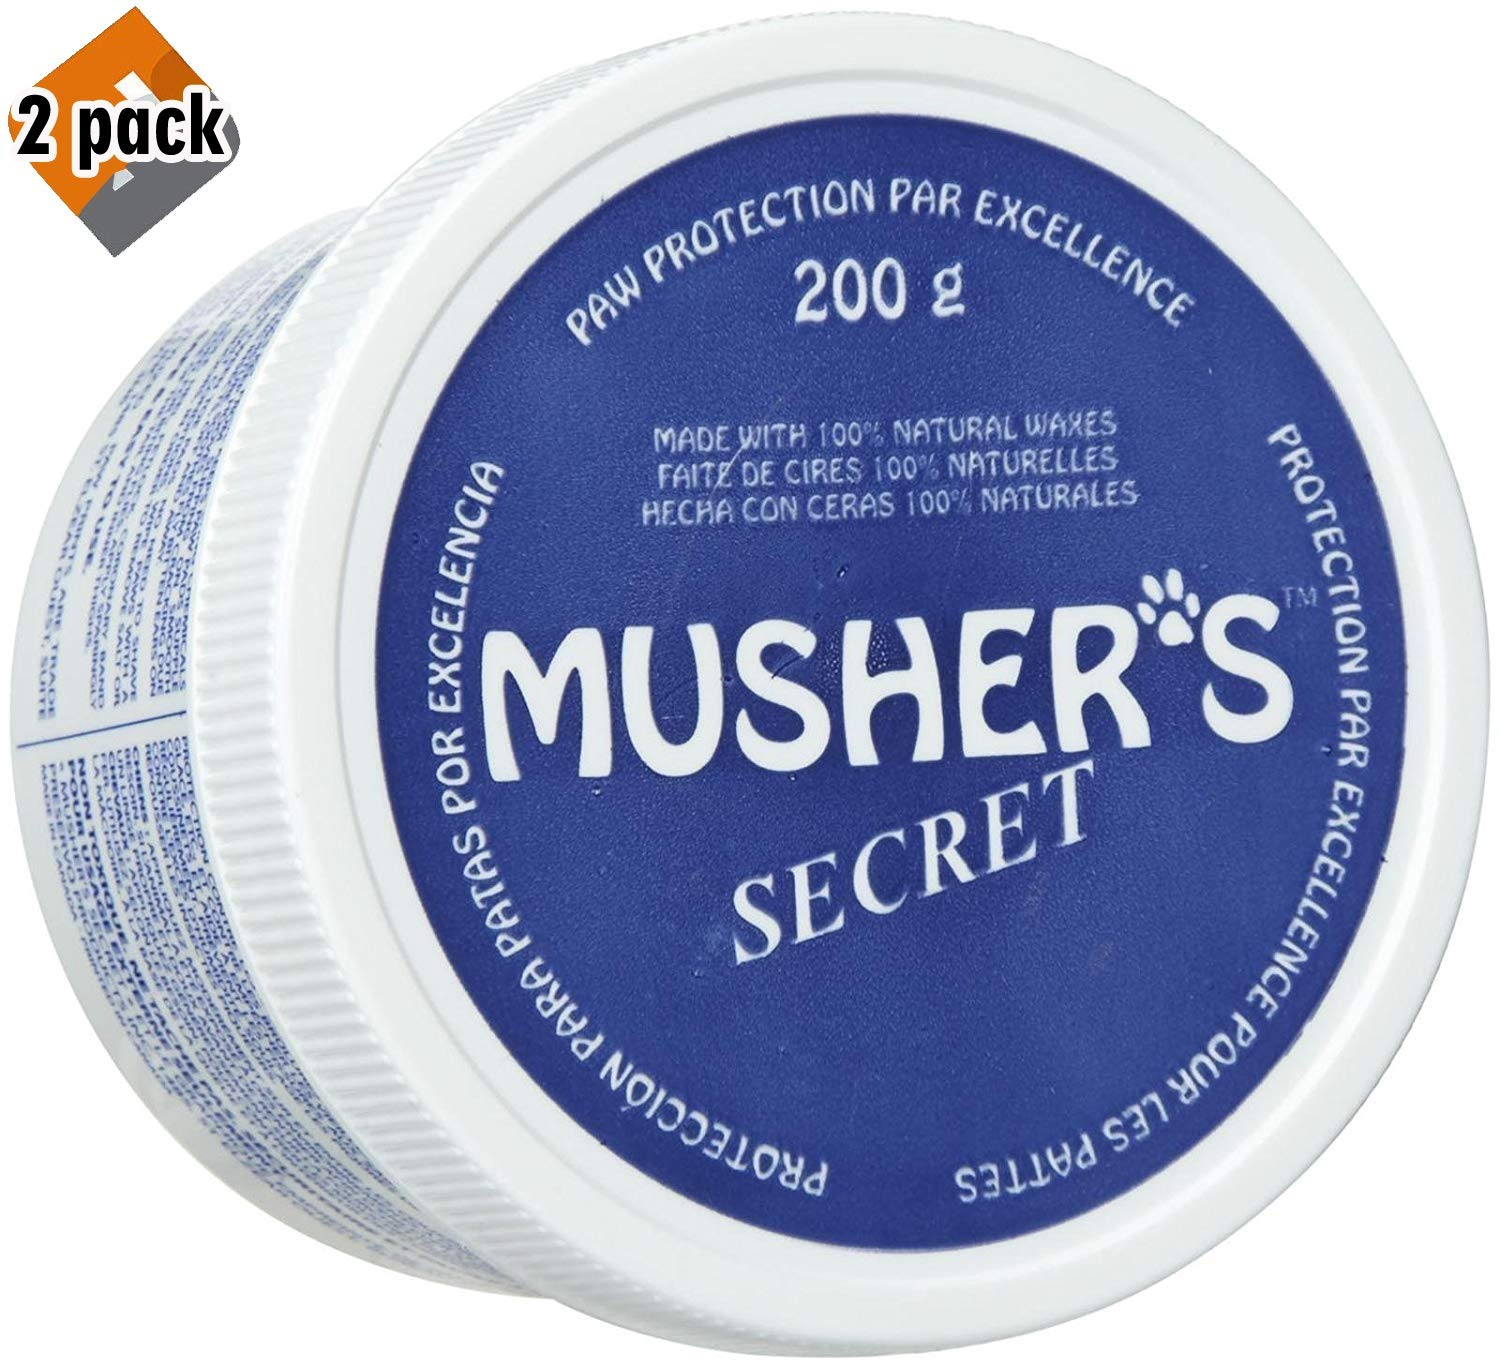 Amazon.com: Mushers Secret Pet Paw Protection Wax: Mascotas